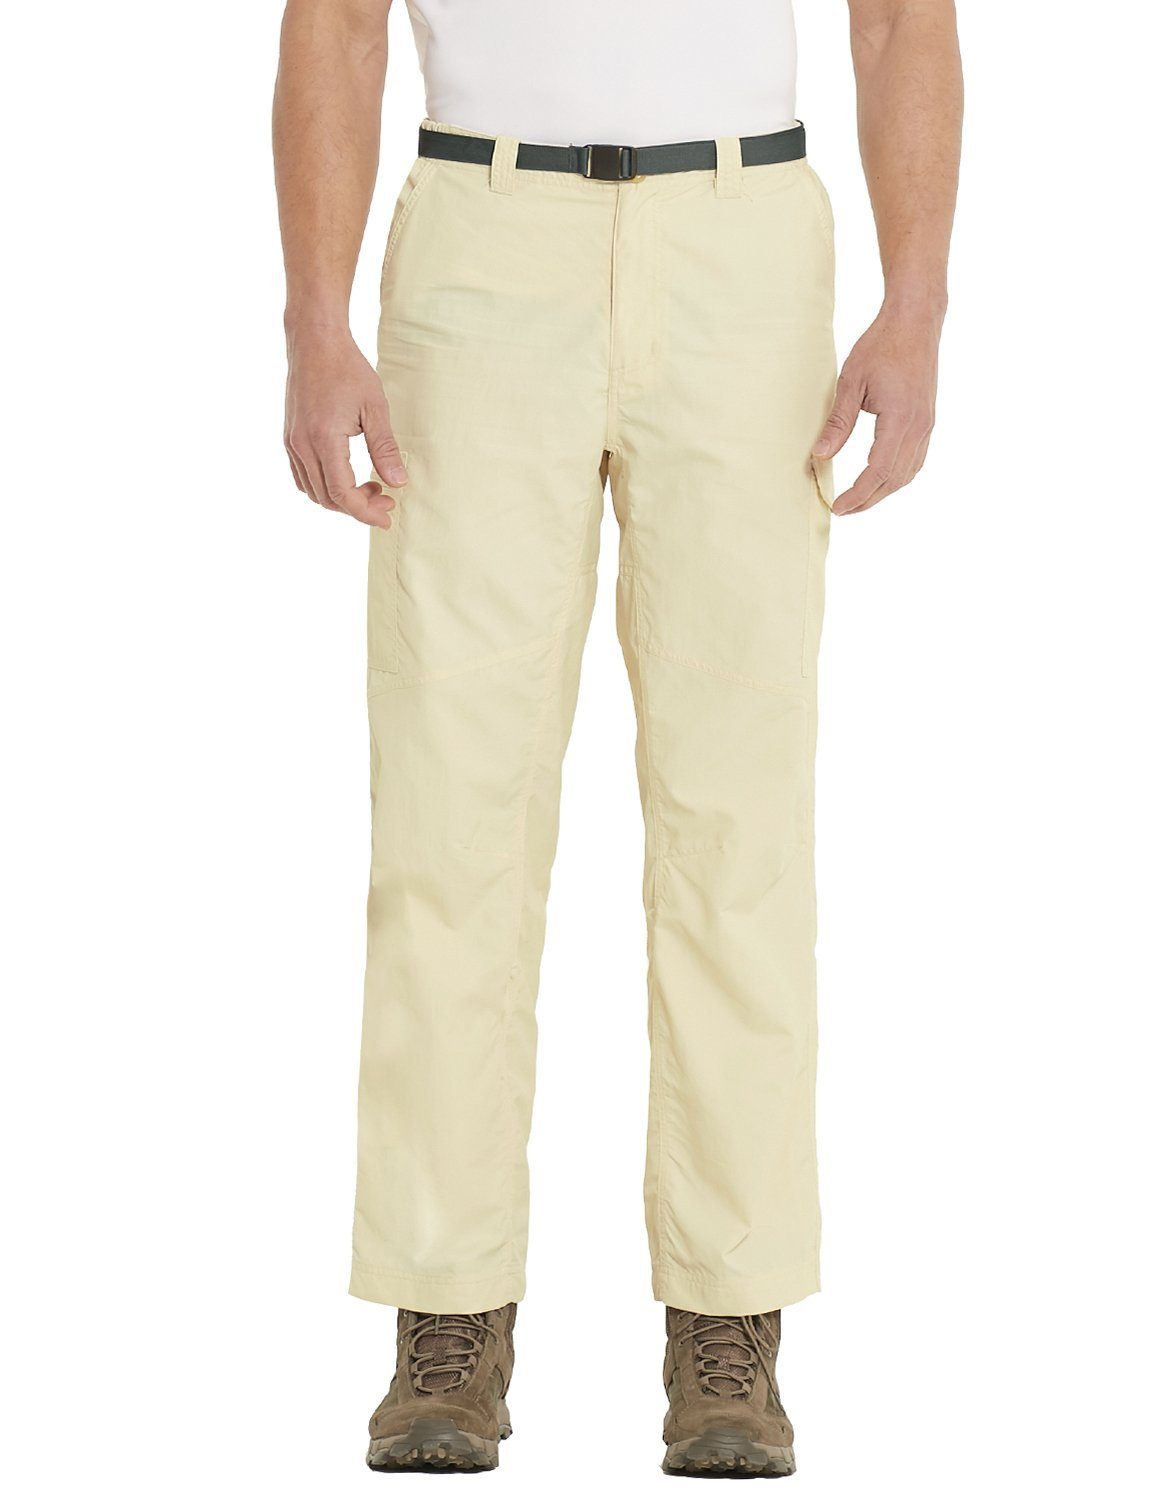 Outdoor Hiker Cargo Pants Baleaf Mens Quick Dry UPF 50